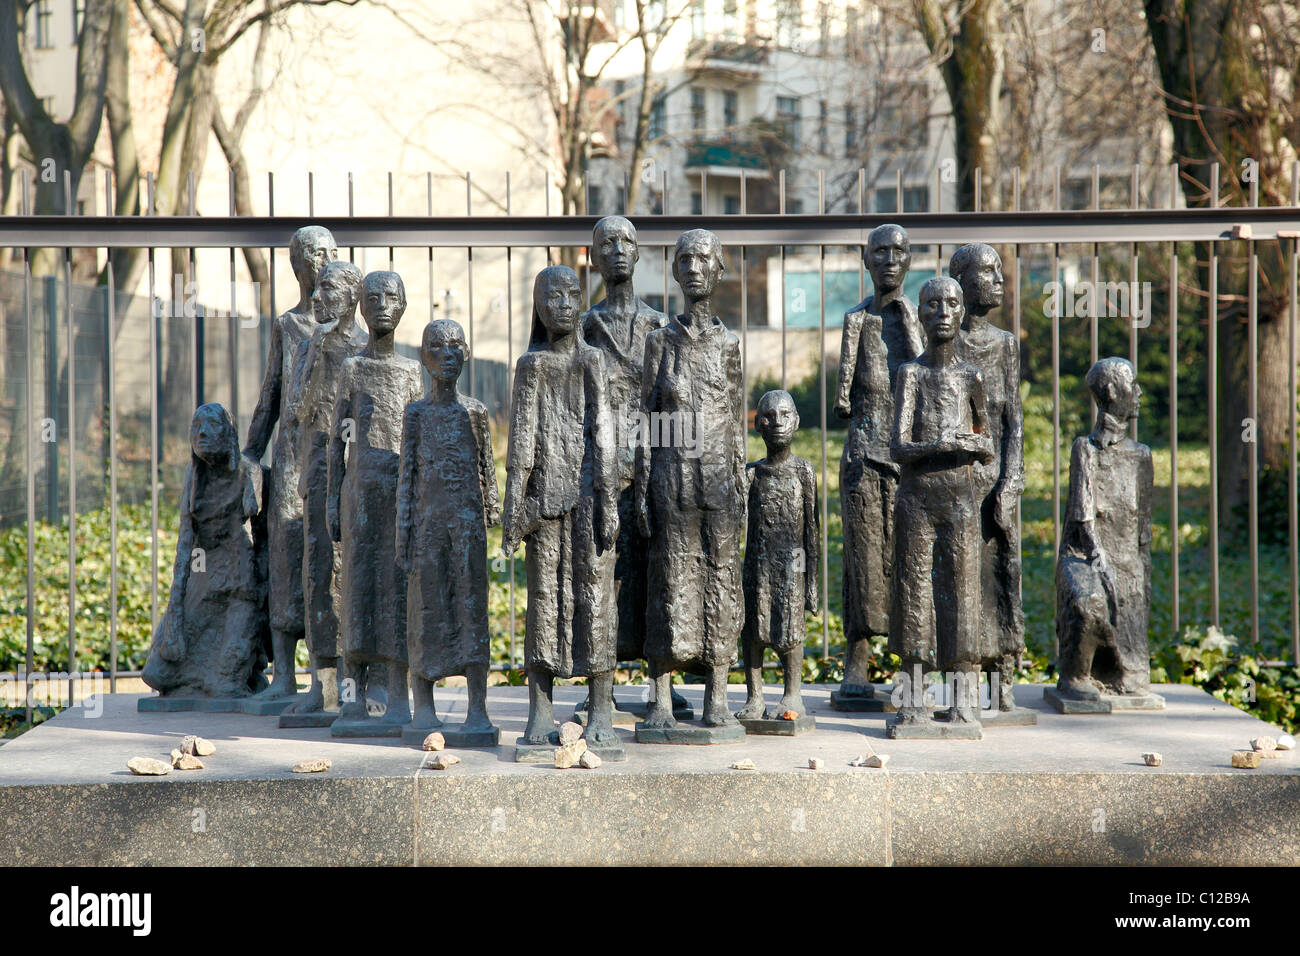 Große Hamburger Strasse Jewish Memorial, Berlin, Germany - Stock Image